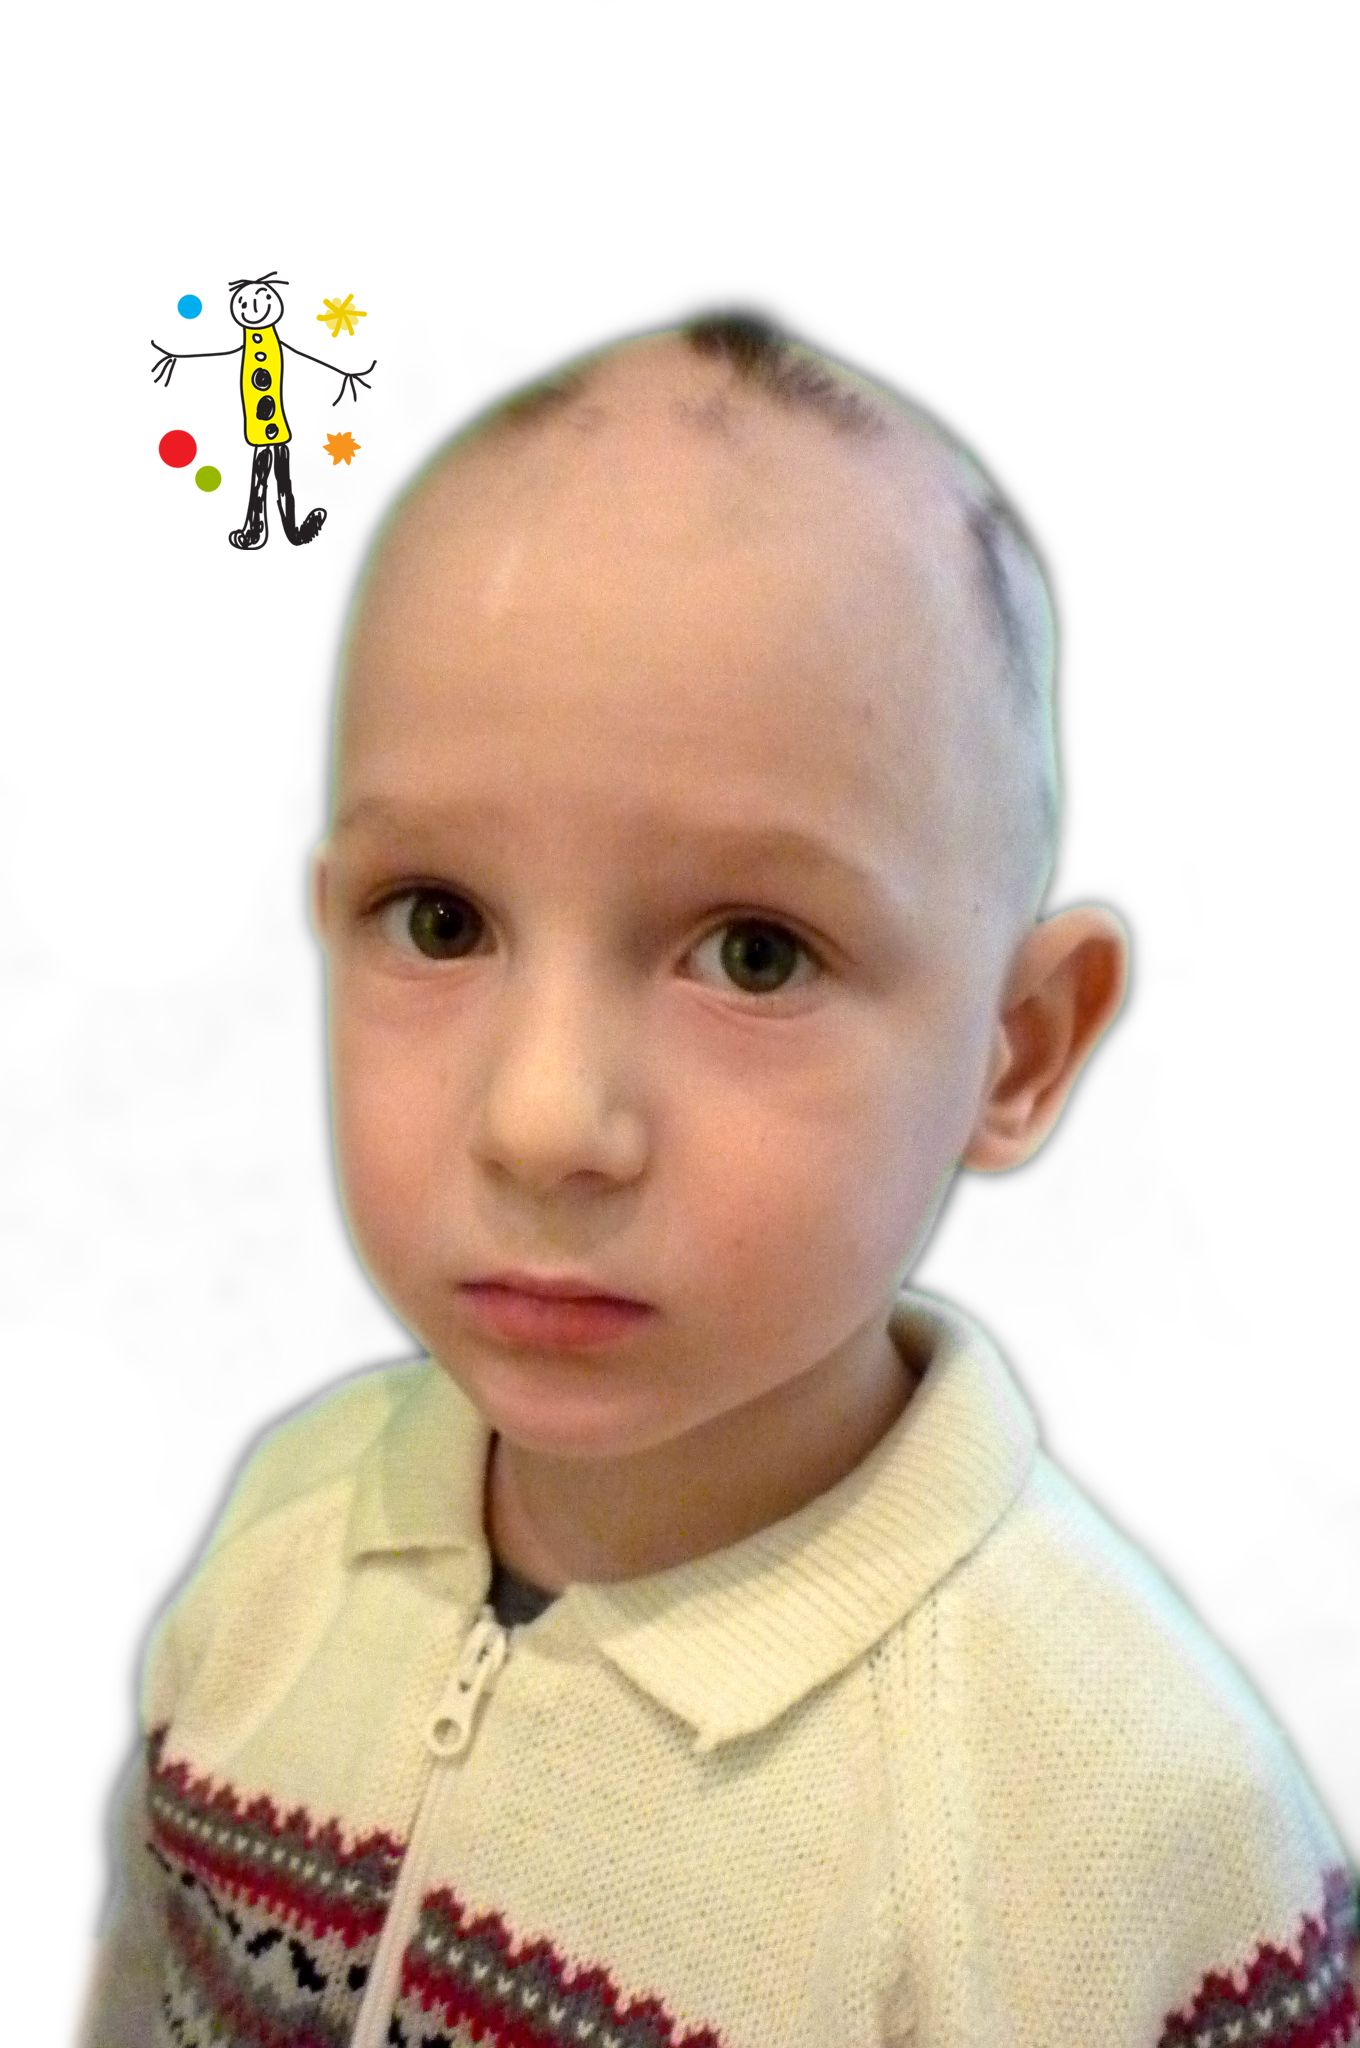 Alopecia universalis in children. I'm 5. And this is my